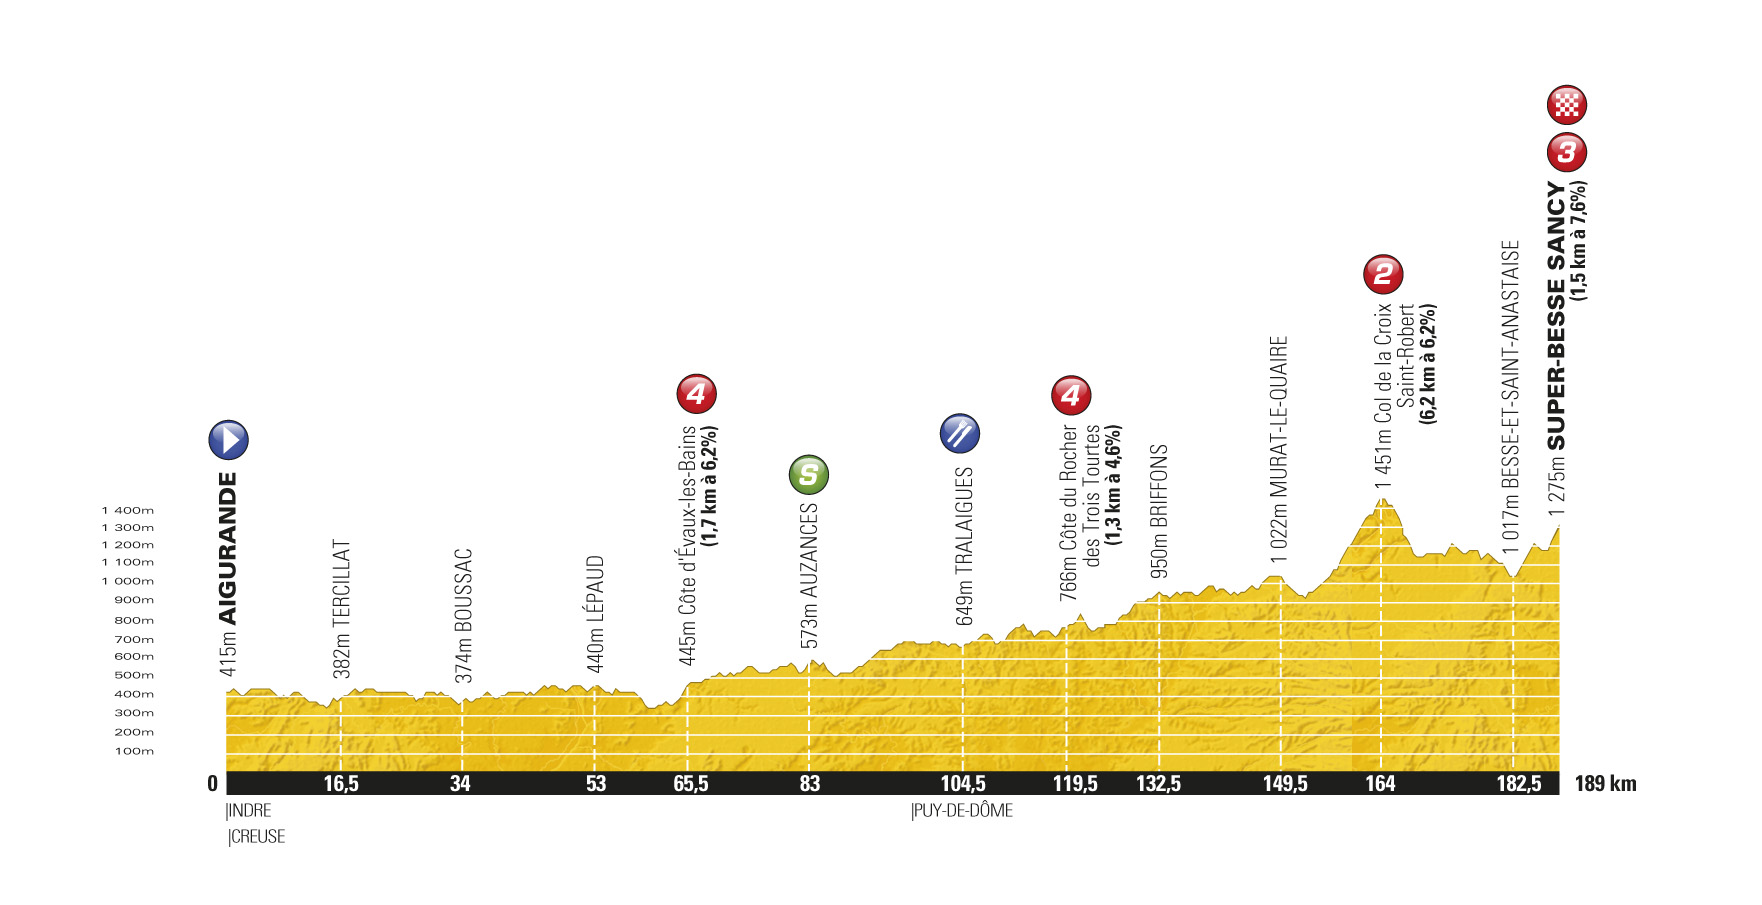 Stage 8 profile, Tour de France 2011